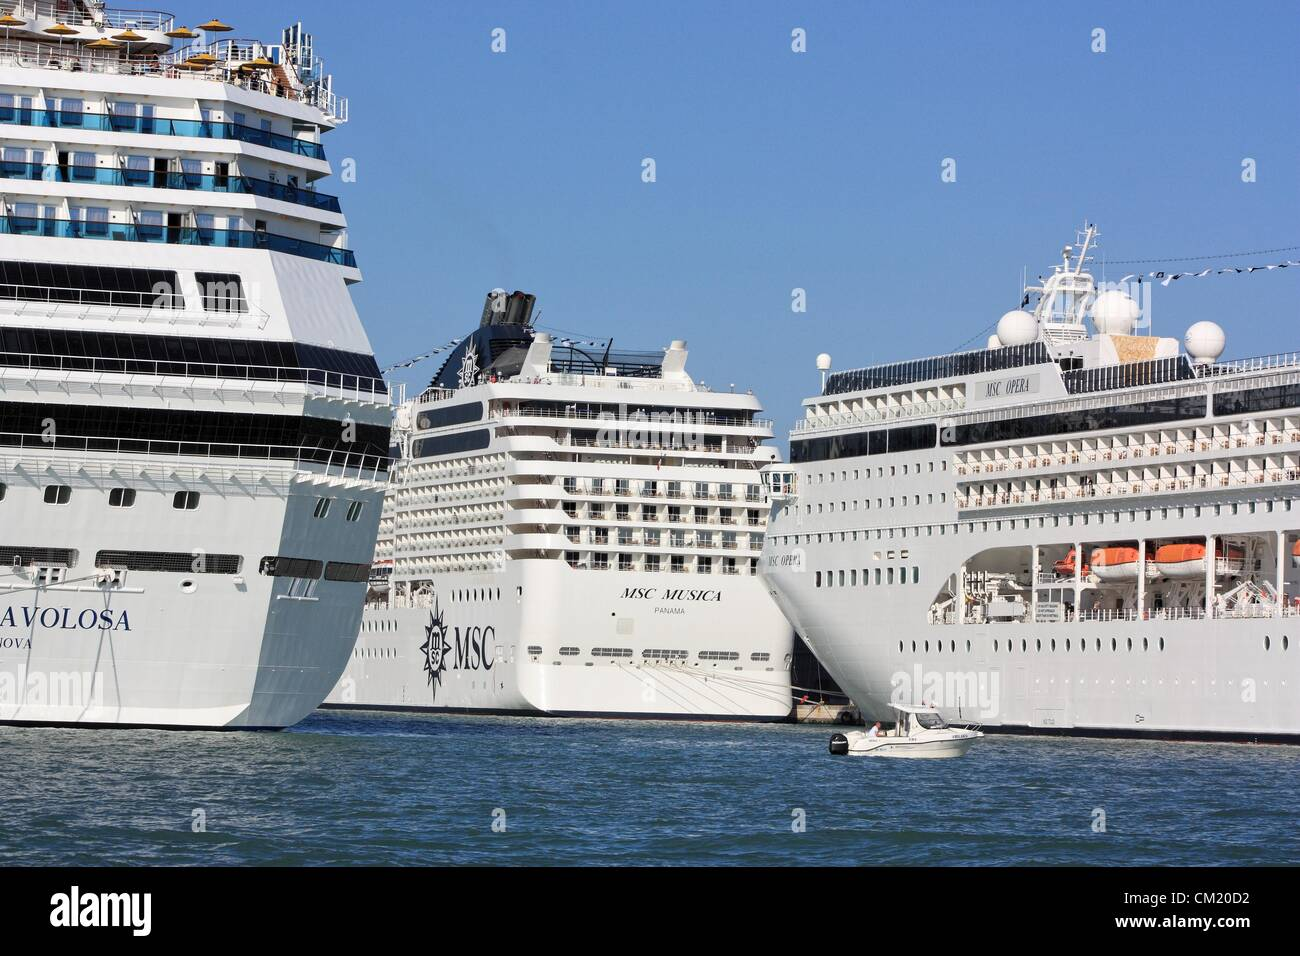 cruise ships costa favolosa msc opera and msc musica in the port of stock photo royalty free